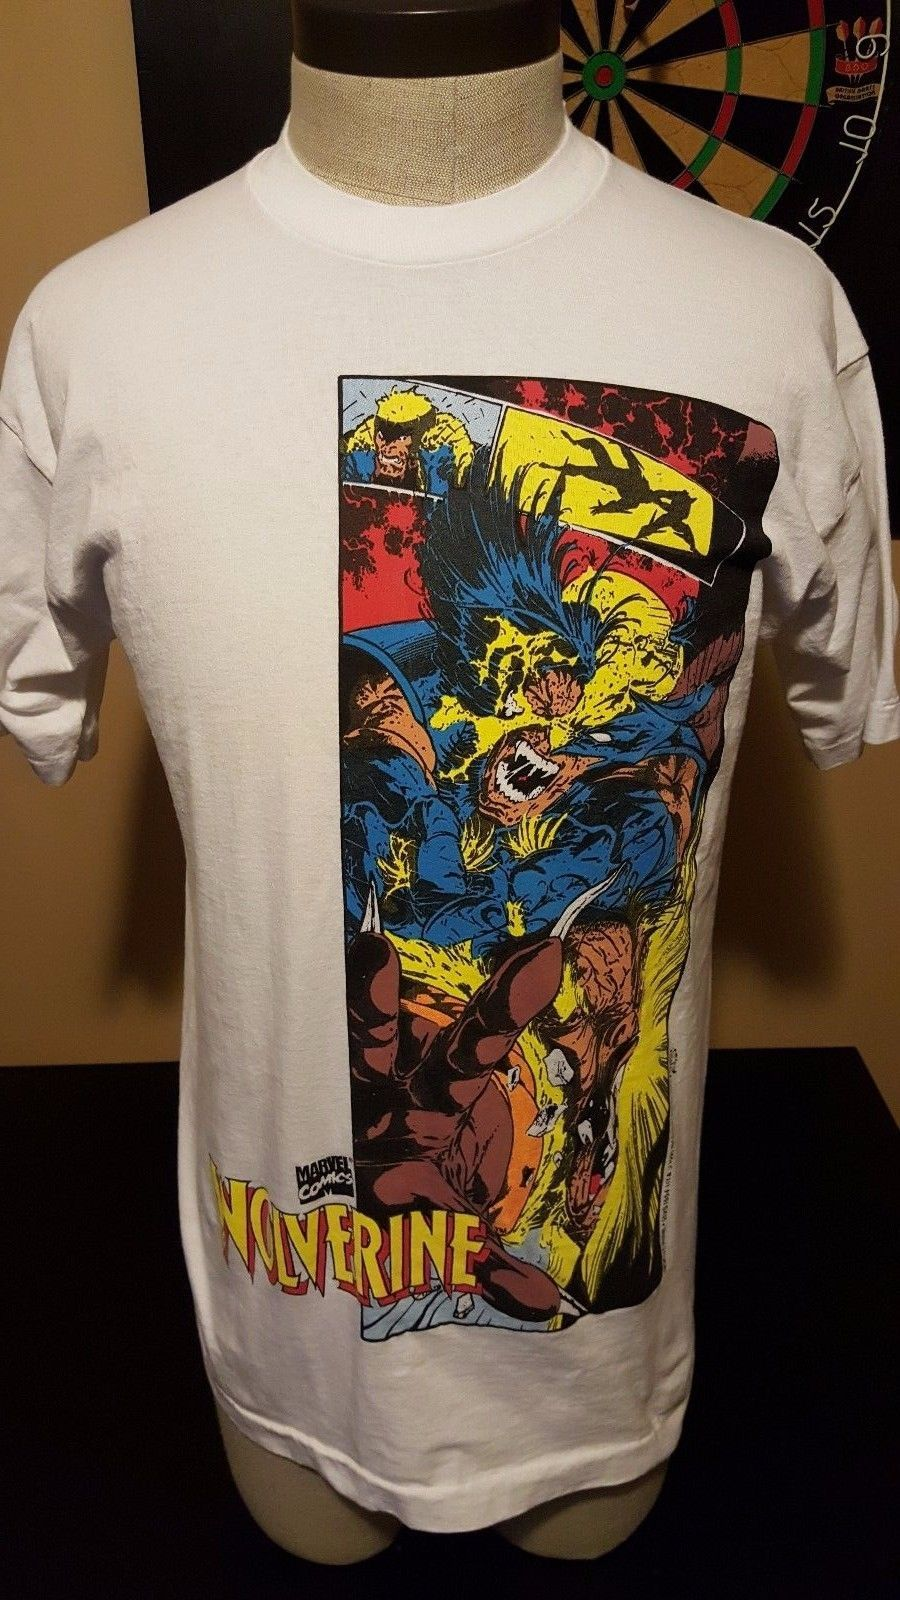 7a0563a5dd20 Vintage 90s 1995 Large Wolverine x Men T Shirt Marvel Comic Book Superhero